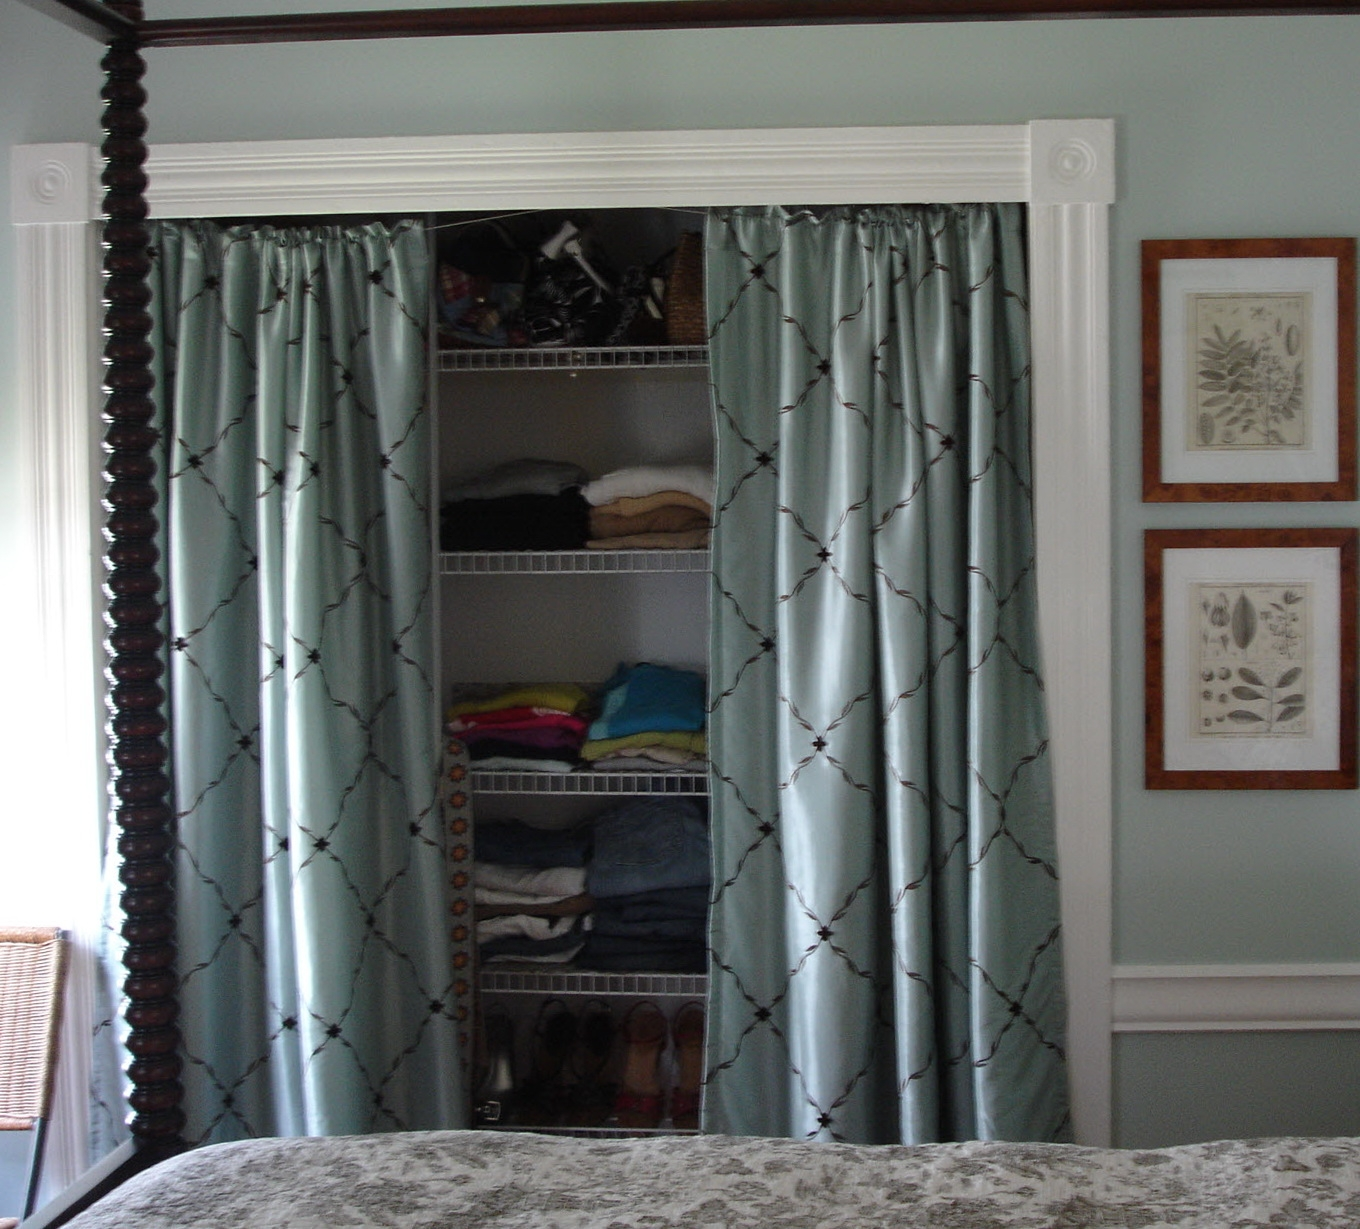 Curtain Closet Doors Opening Design Closet Organizer Regarding Fabric Door Curtains (Image 11 of 25)